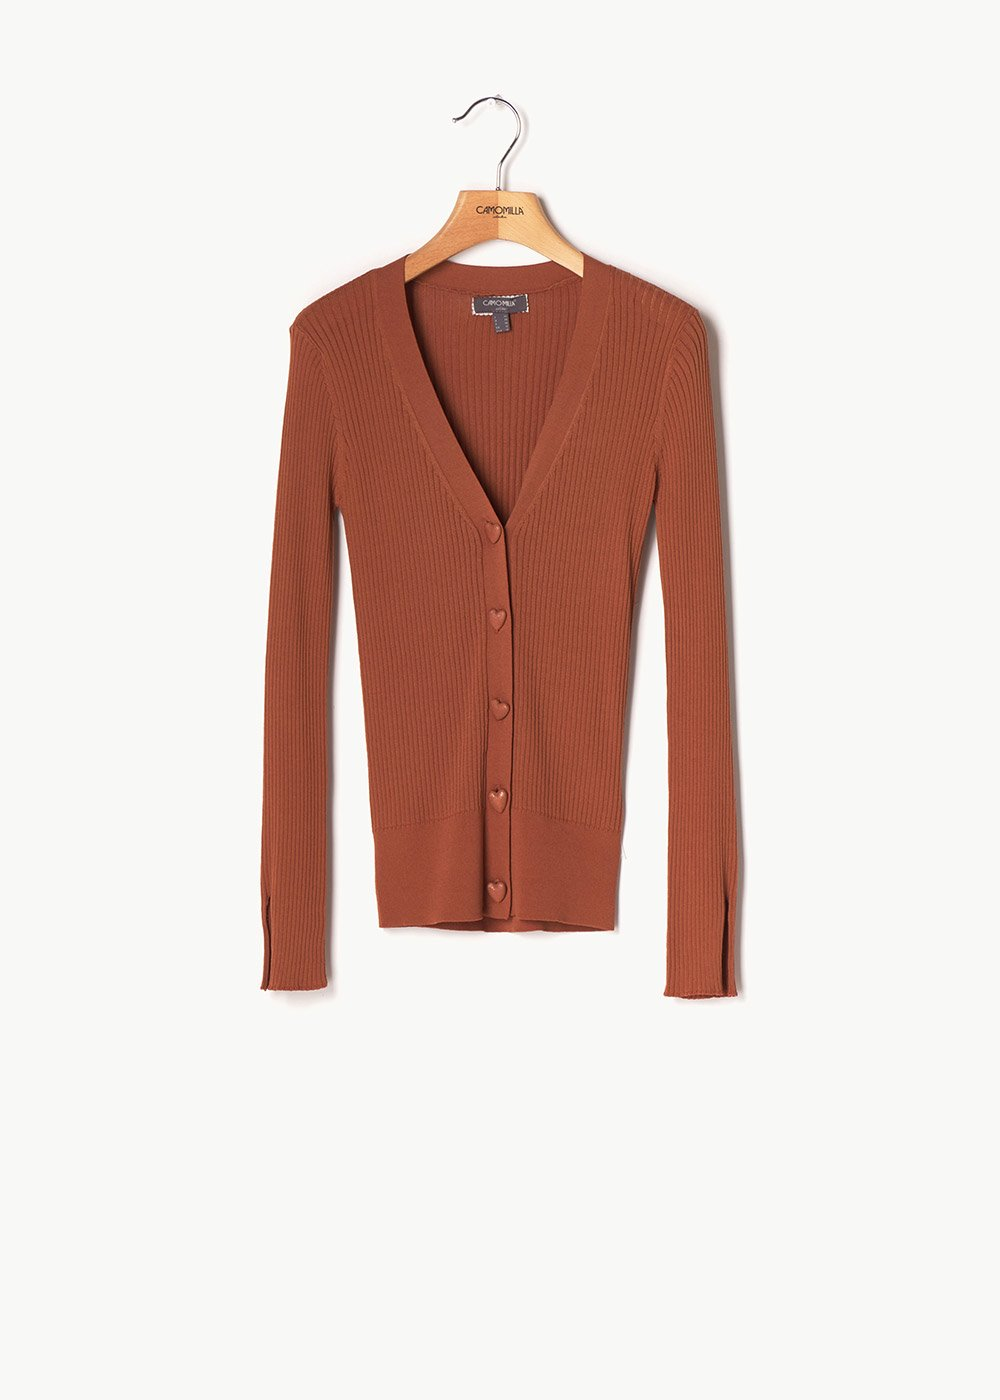 Cleo narrow-ribbed cardigan with button detail - Cocoa - Woman